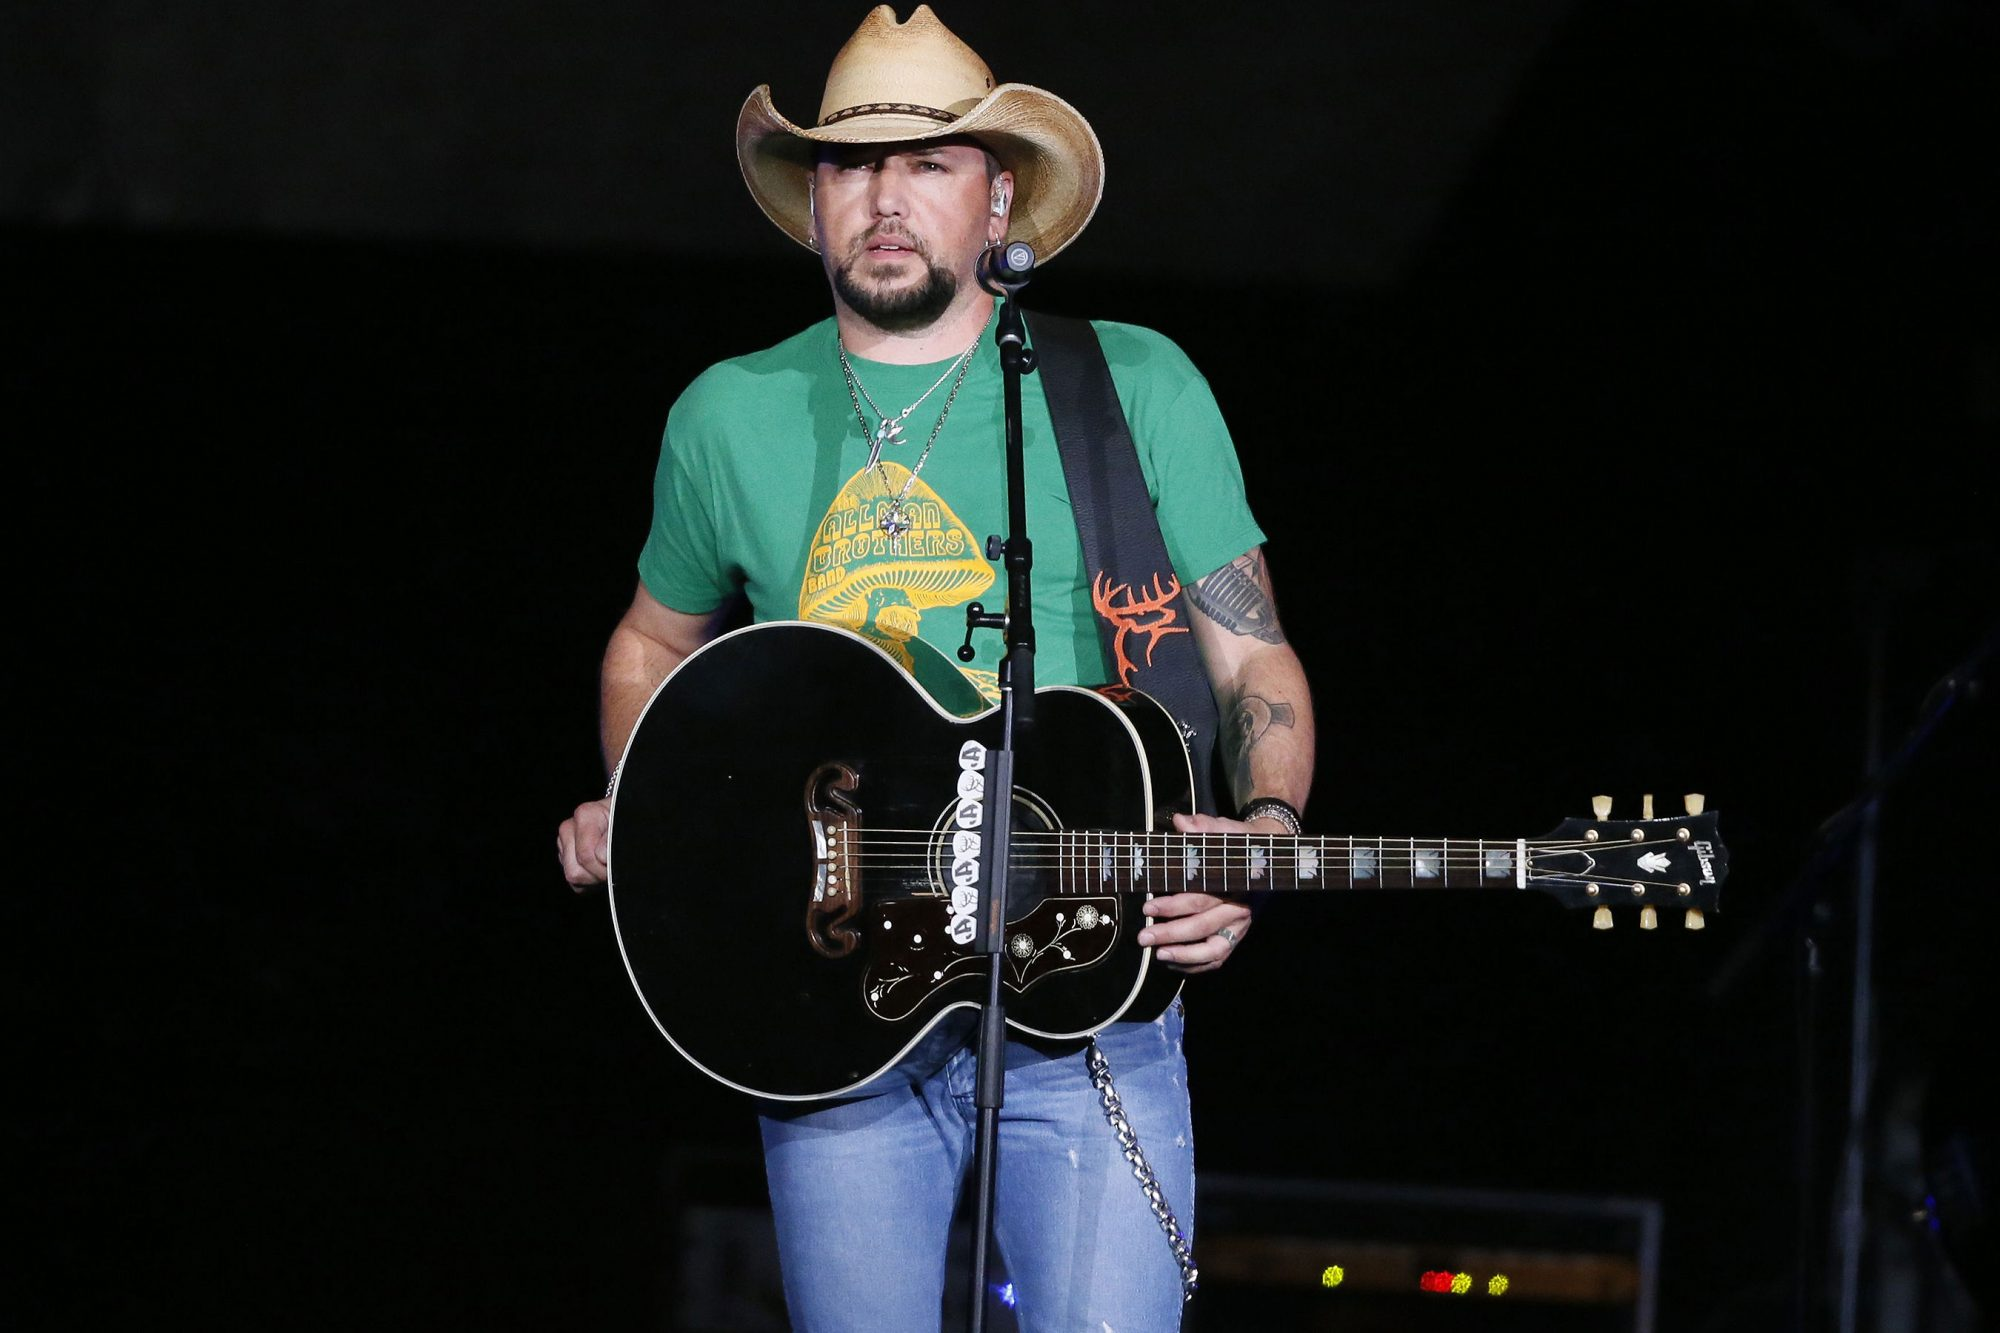 Las Vegas Shooting Aldean, Tulsa, USA - 12 Oct 2017